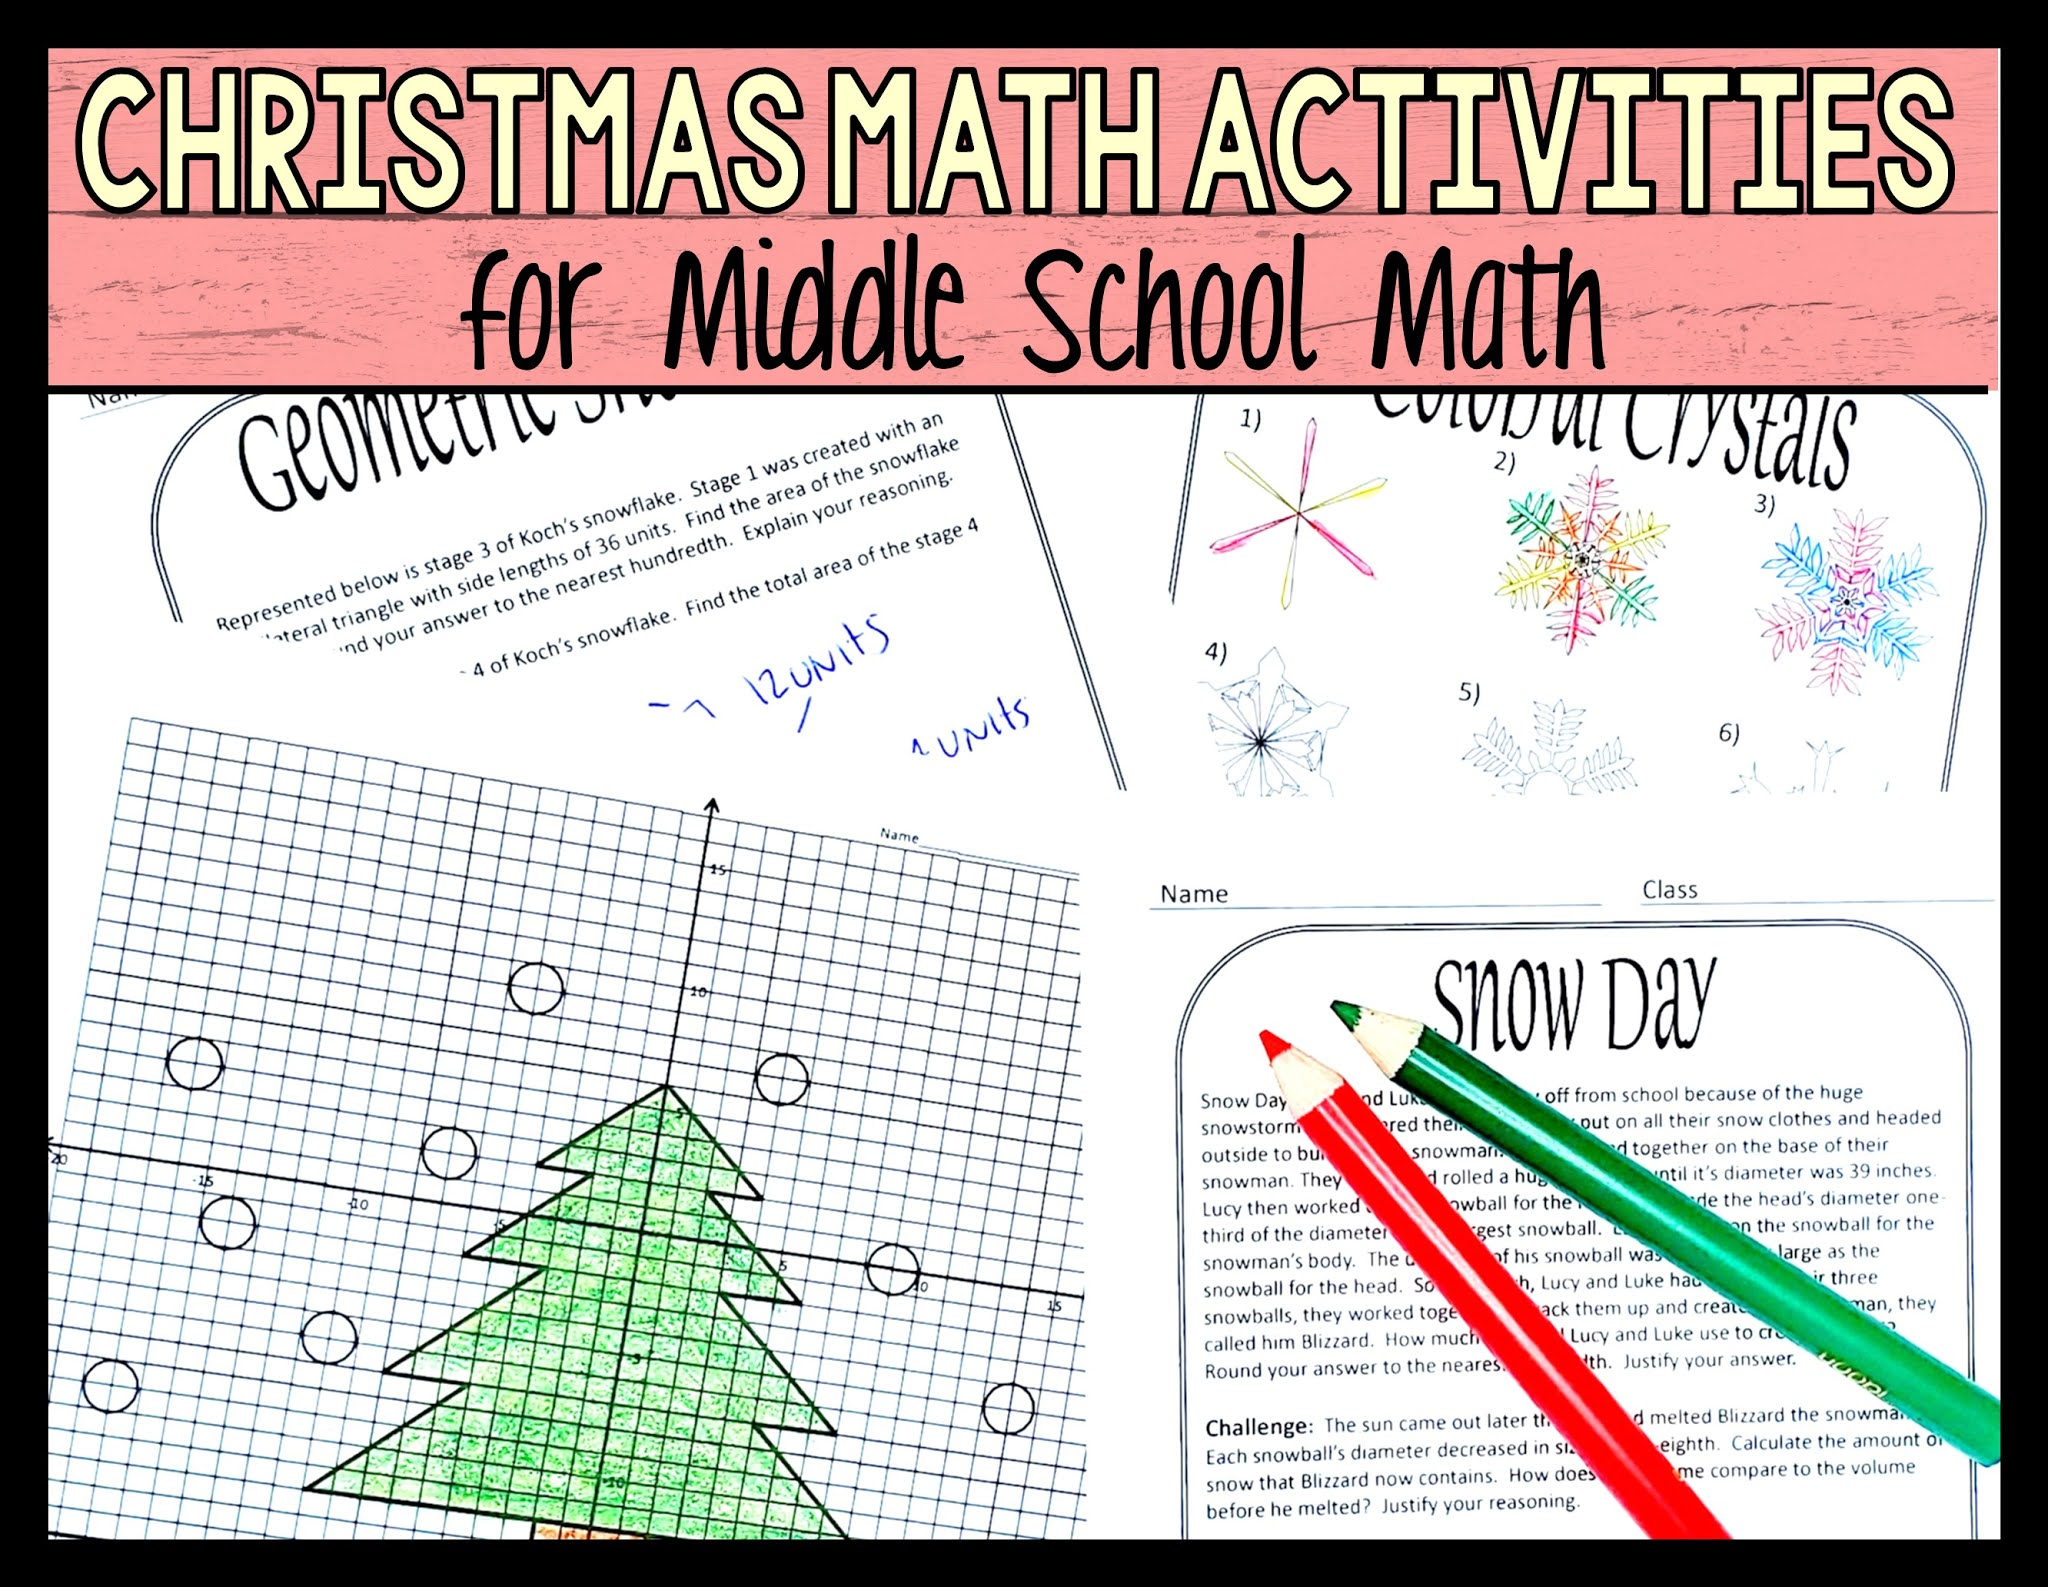 hight resolution of Christmas Activity Worksheets for Middle School Math - Make Sense of Math